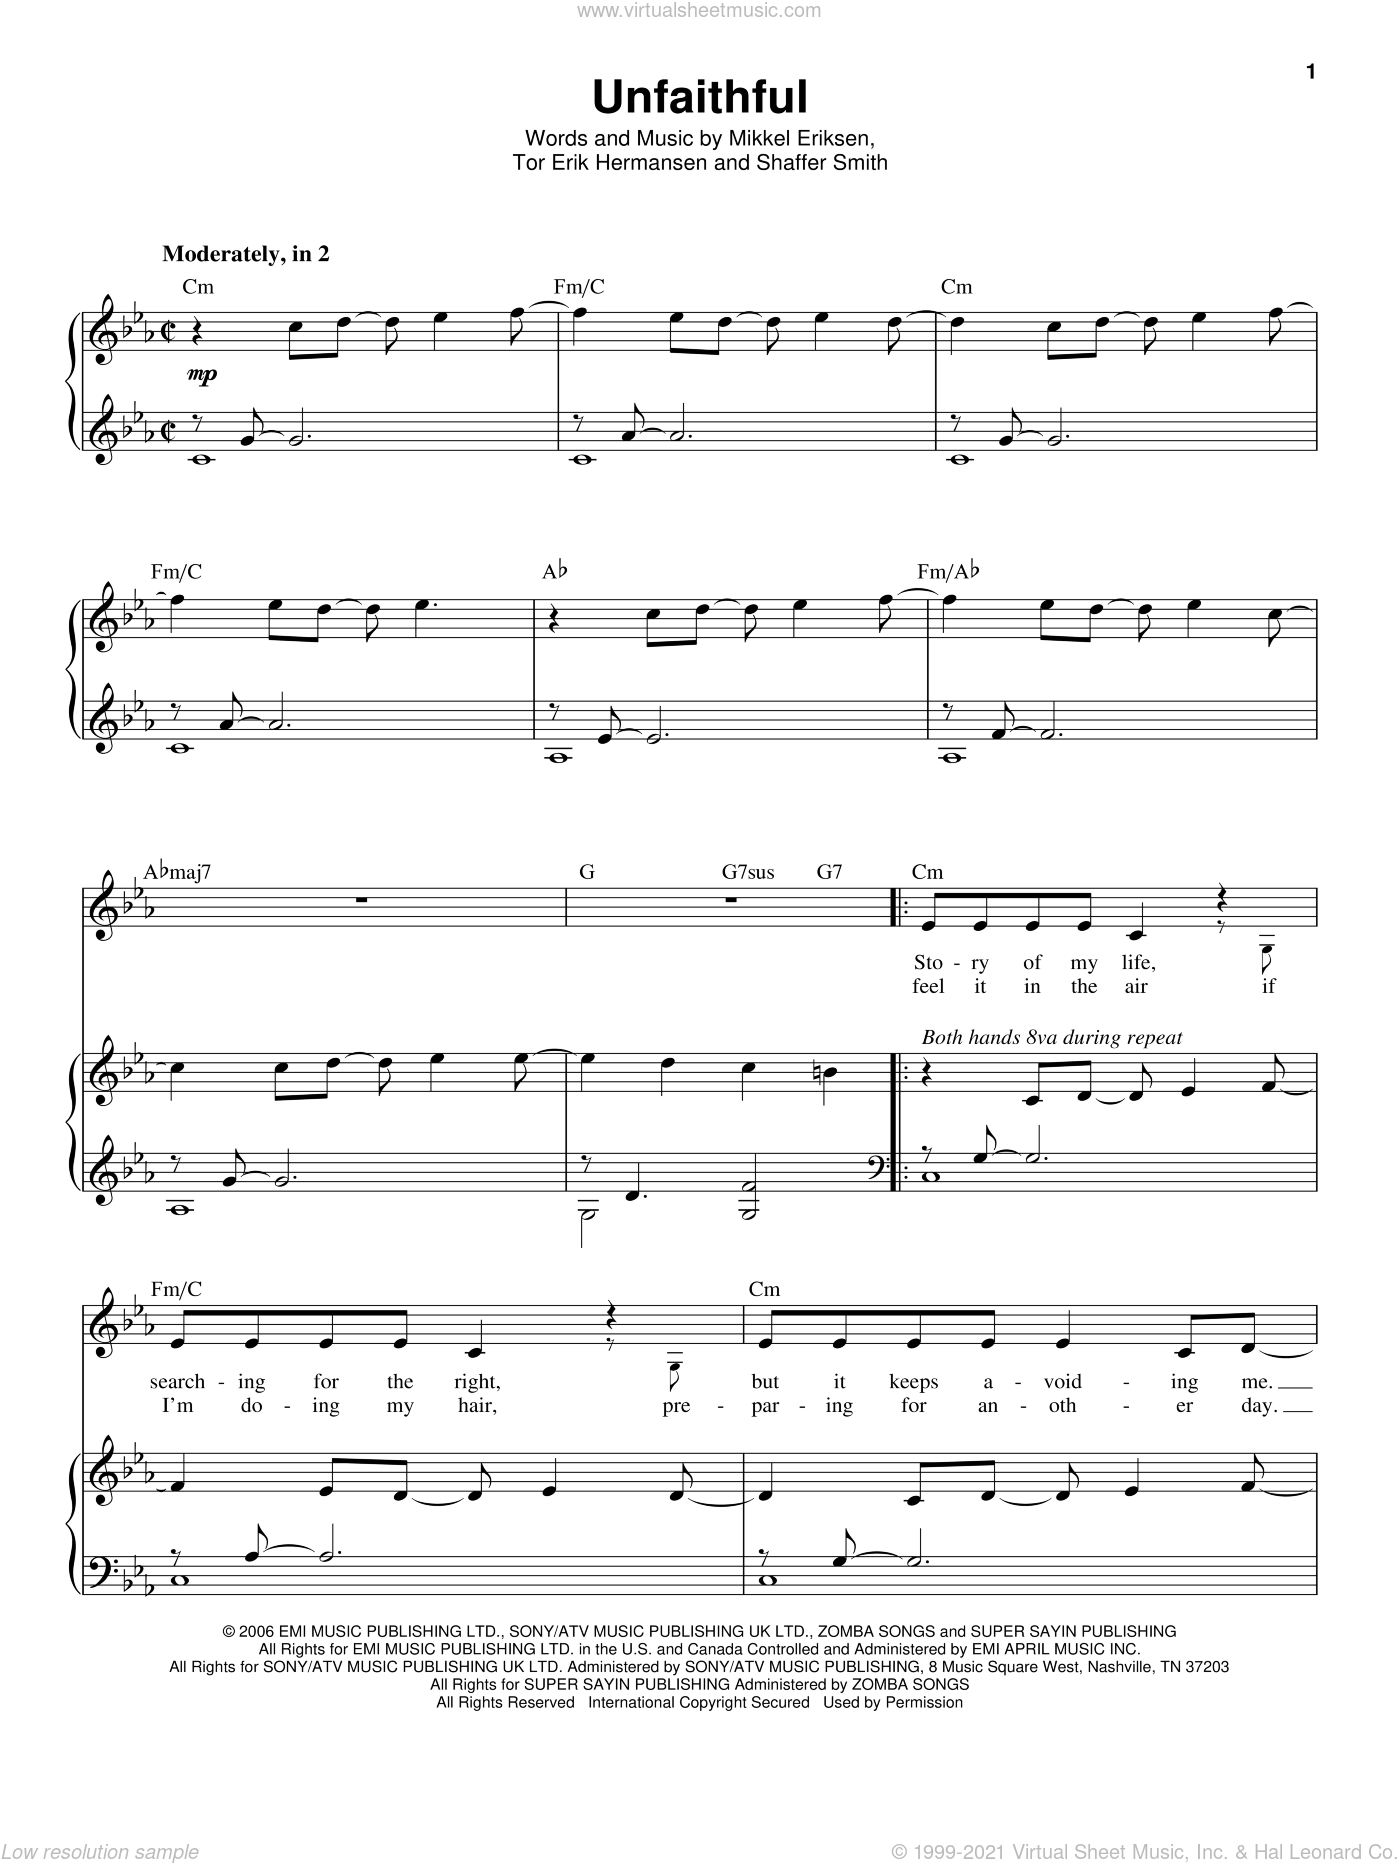 Unfaithful sheet music for voice and piano by Tor Erik Hermansen, Rihanna, Mikkel Eriksen and Shaffer Smith. Score Image Preview.